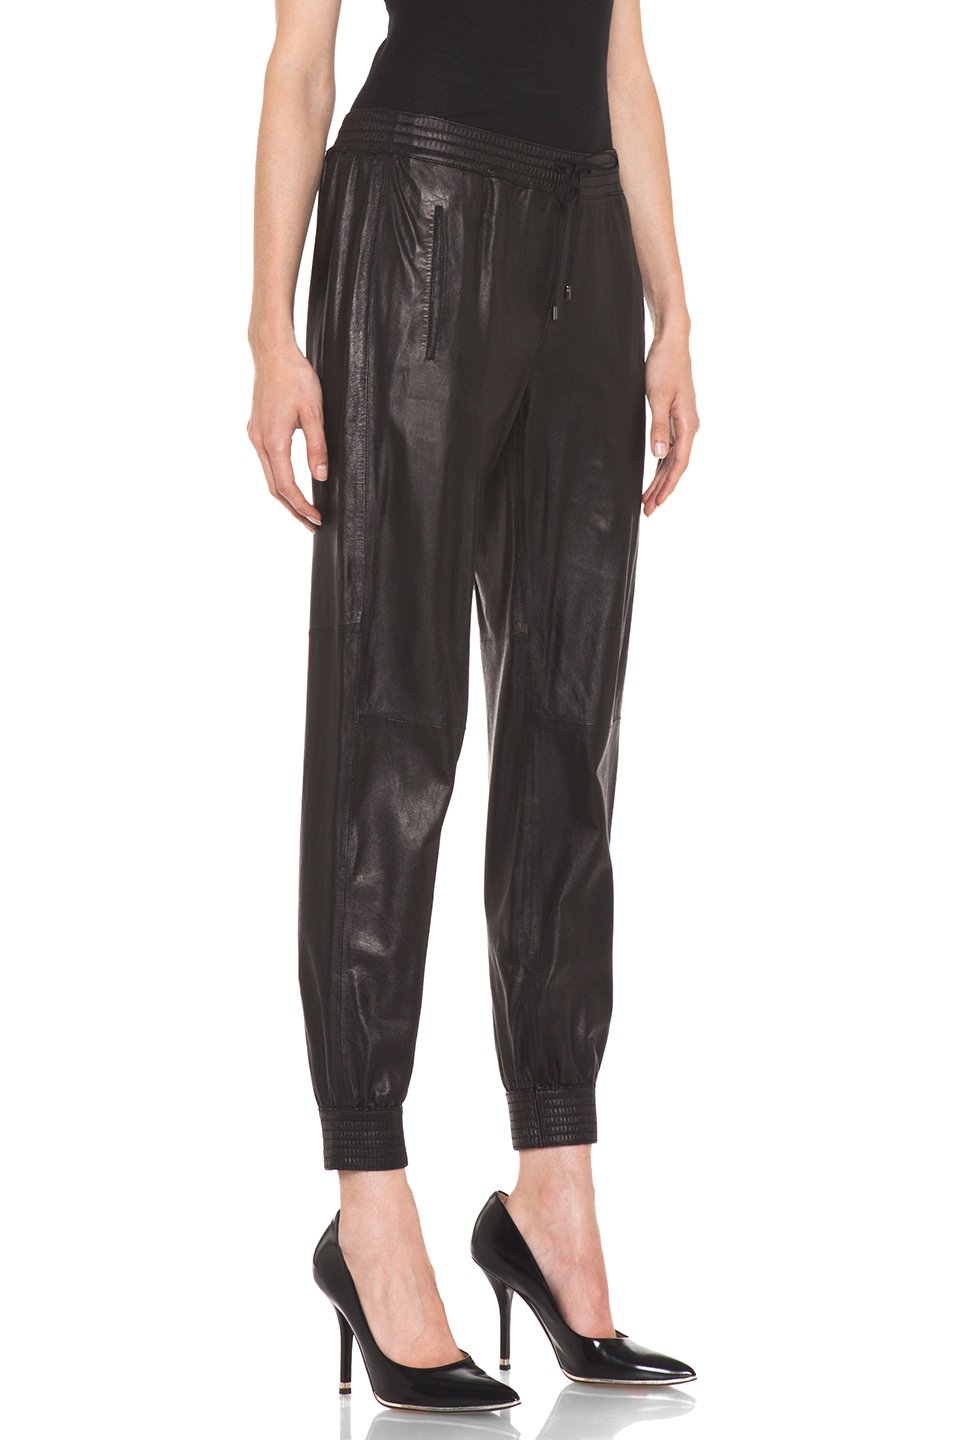 Elegant Which Has Been Seen As The More Approachable And Moderate Of The Major Womens Athletic Wear Chains The Collection Takes Athleta To Higher Price Points And Edgier Looks $398 Black Leather Jogging Pants $228 Blue And Gray Color